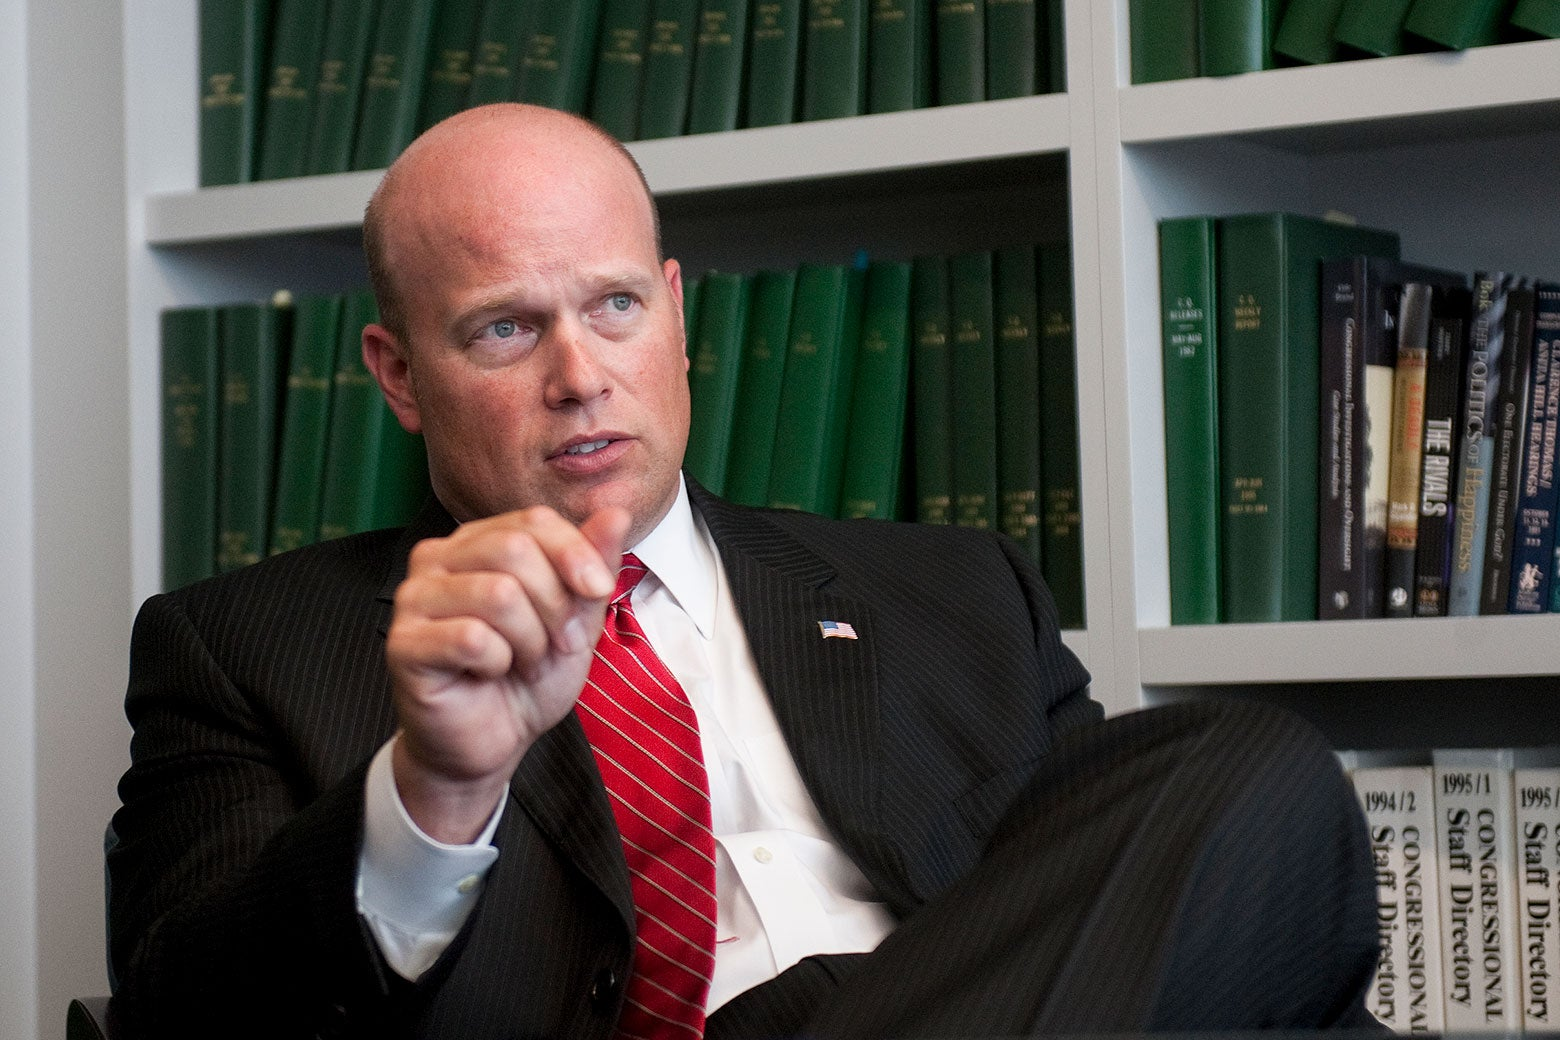 Matthew Whitaker, who purports to serve as acting attorney general.